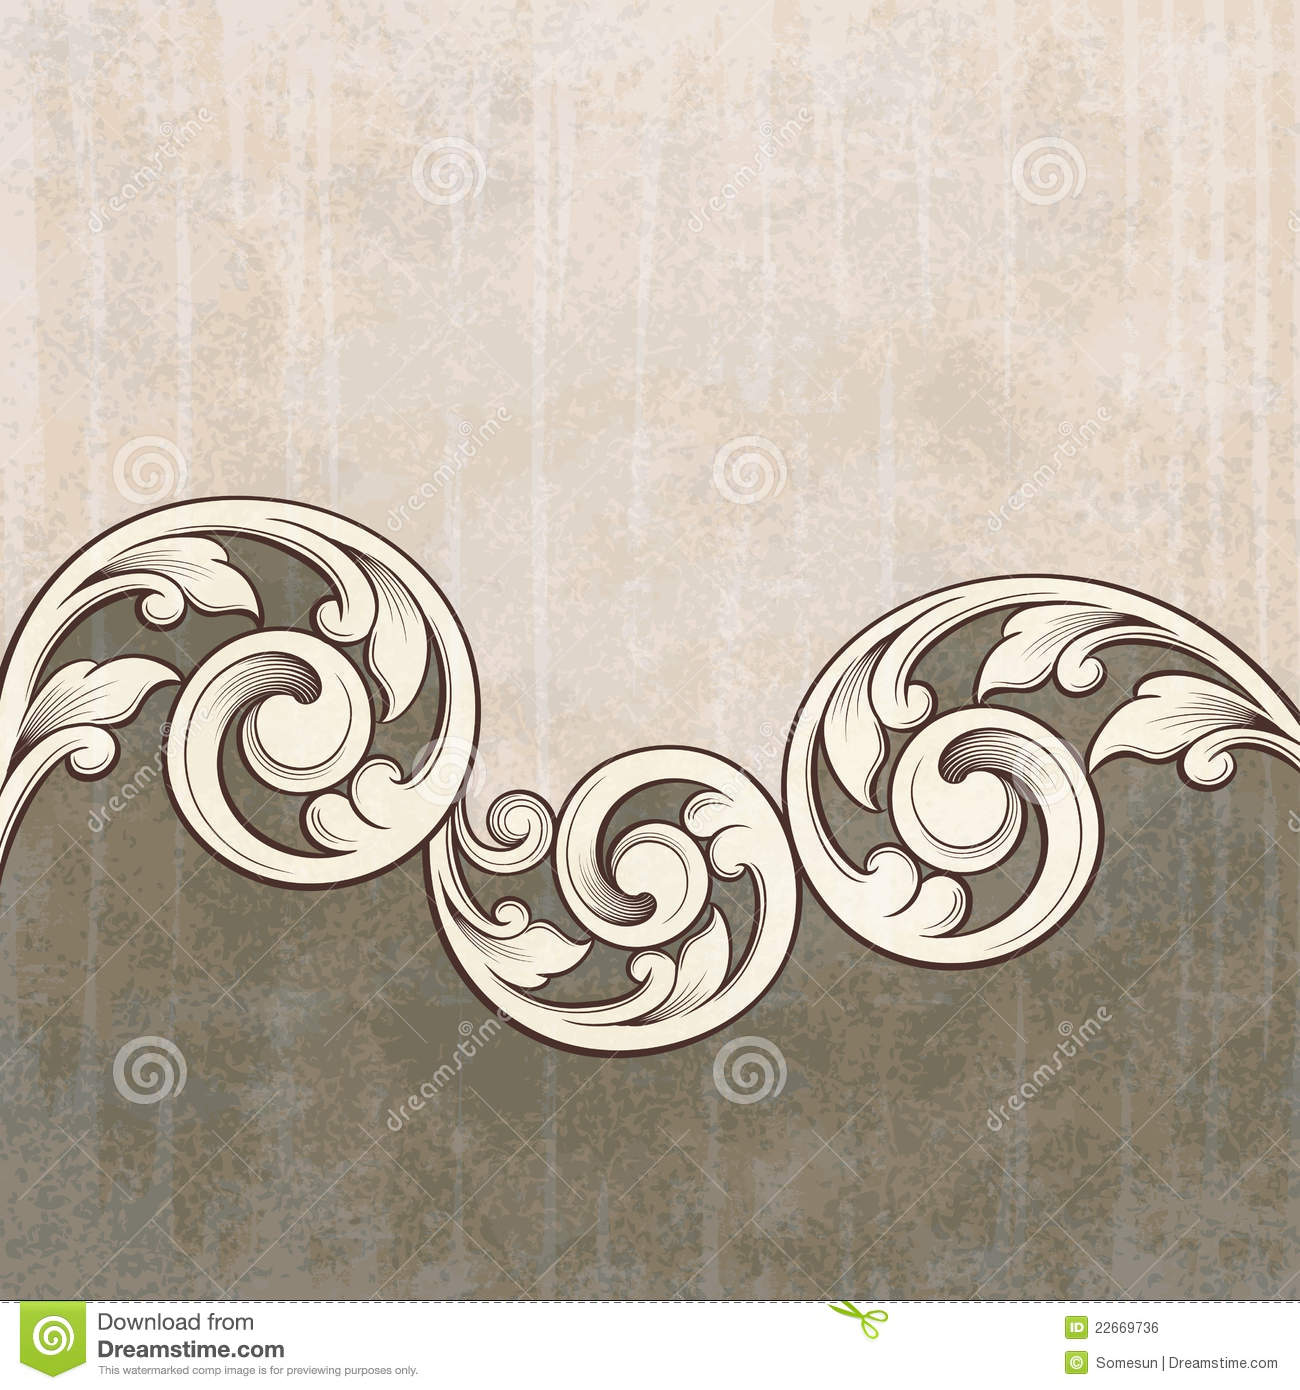 Antique Scroll Patterns: Vintage Scroll Engraving Pattern Grunge Background Royalty